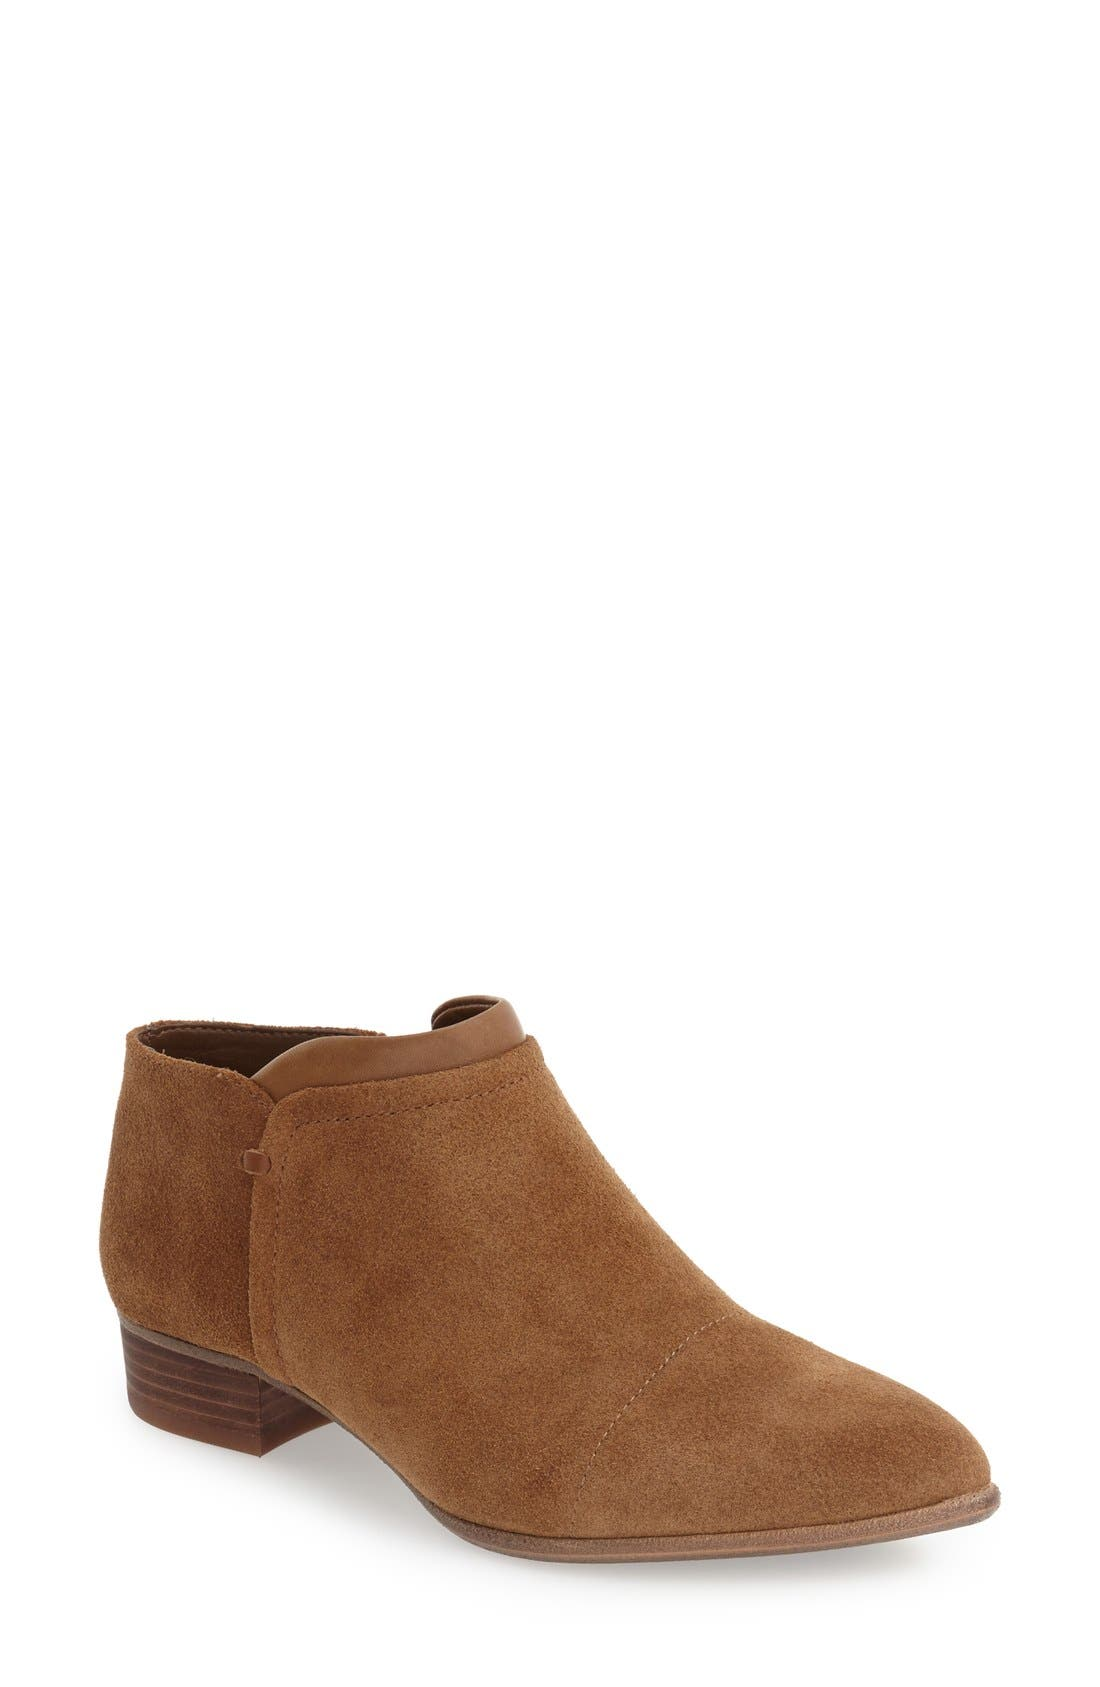 Alternate Image 1 Selected - Vince Camuto 'Jody' Bootie (Women)